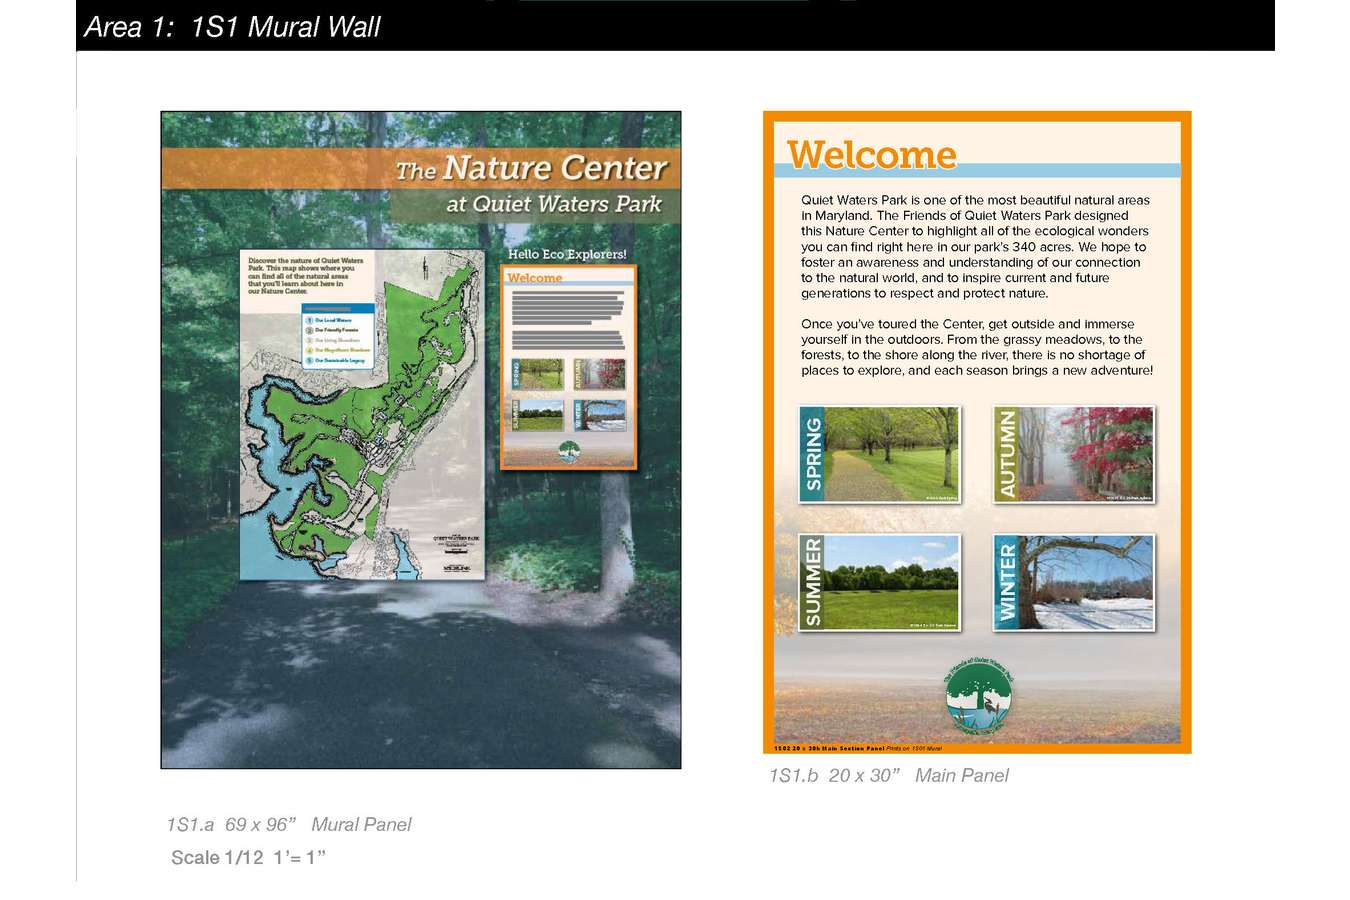 9a QWP MB web 9 : Wall Murals have embedded Main Panel with Overview of Content in Each Thematic Area.